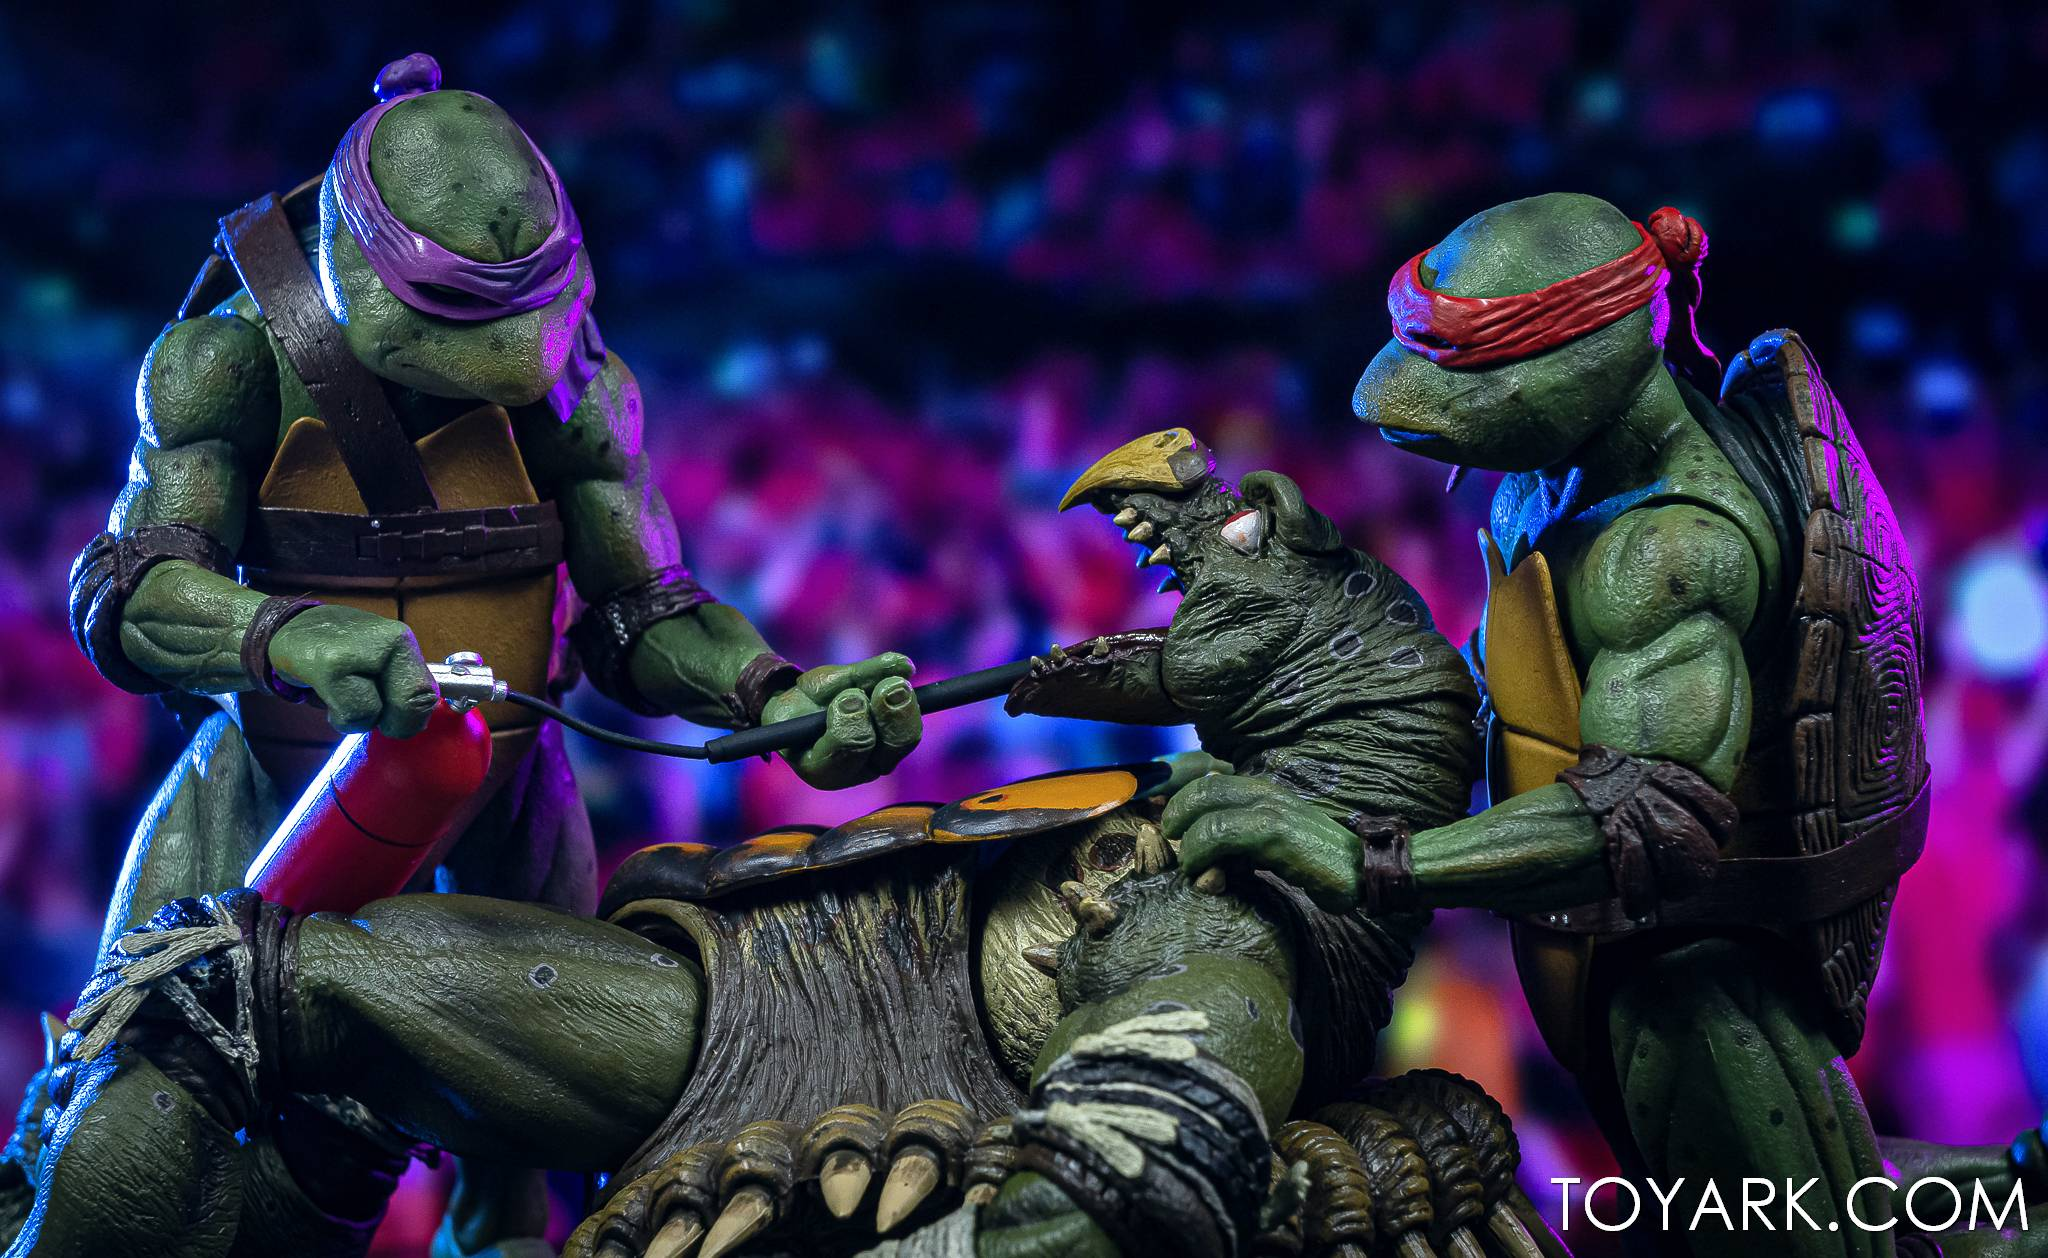 https://news.toyark.com/wp-content/uploads/sites/4/2021/03/NECA-Tokka-and-Rahzar-TMNT-II-038.jpg